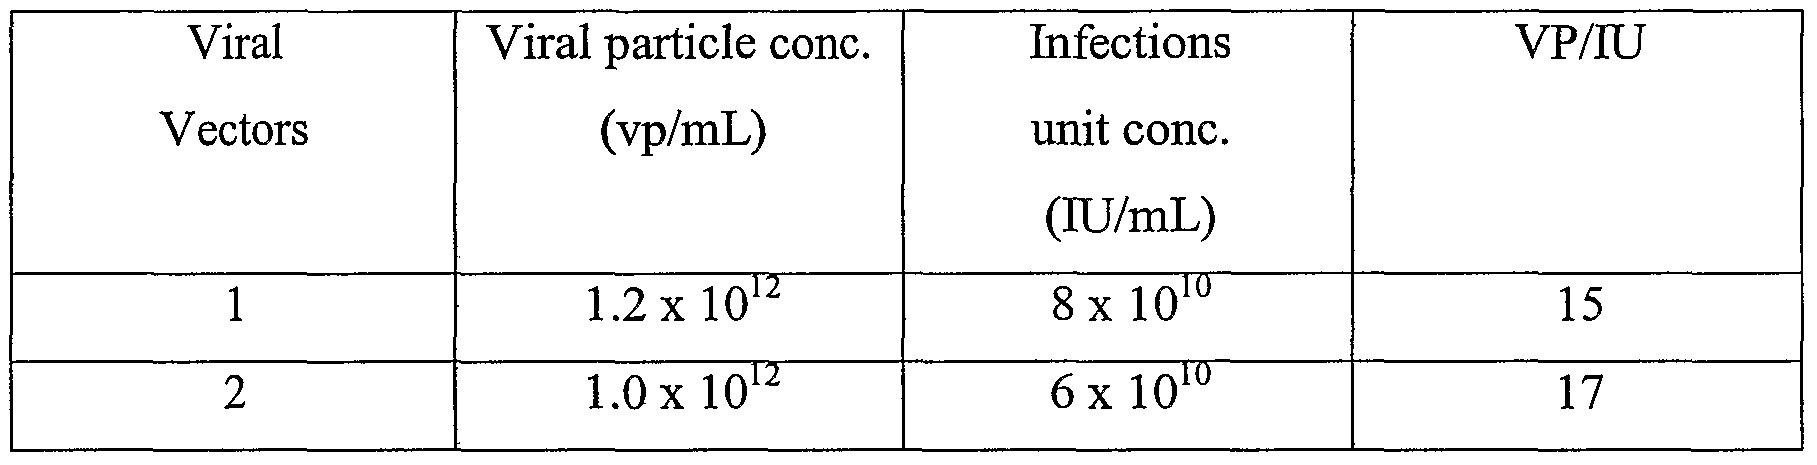 WO2006052302A2 - Method of producing and purifying